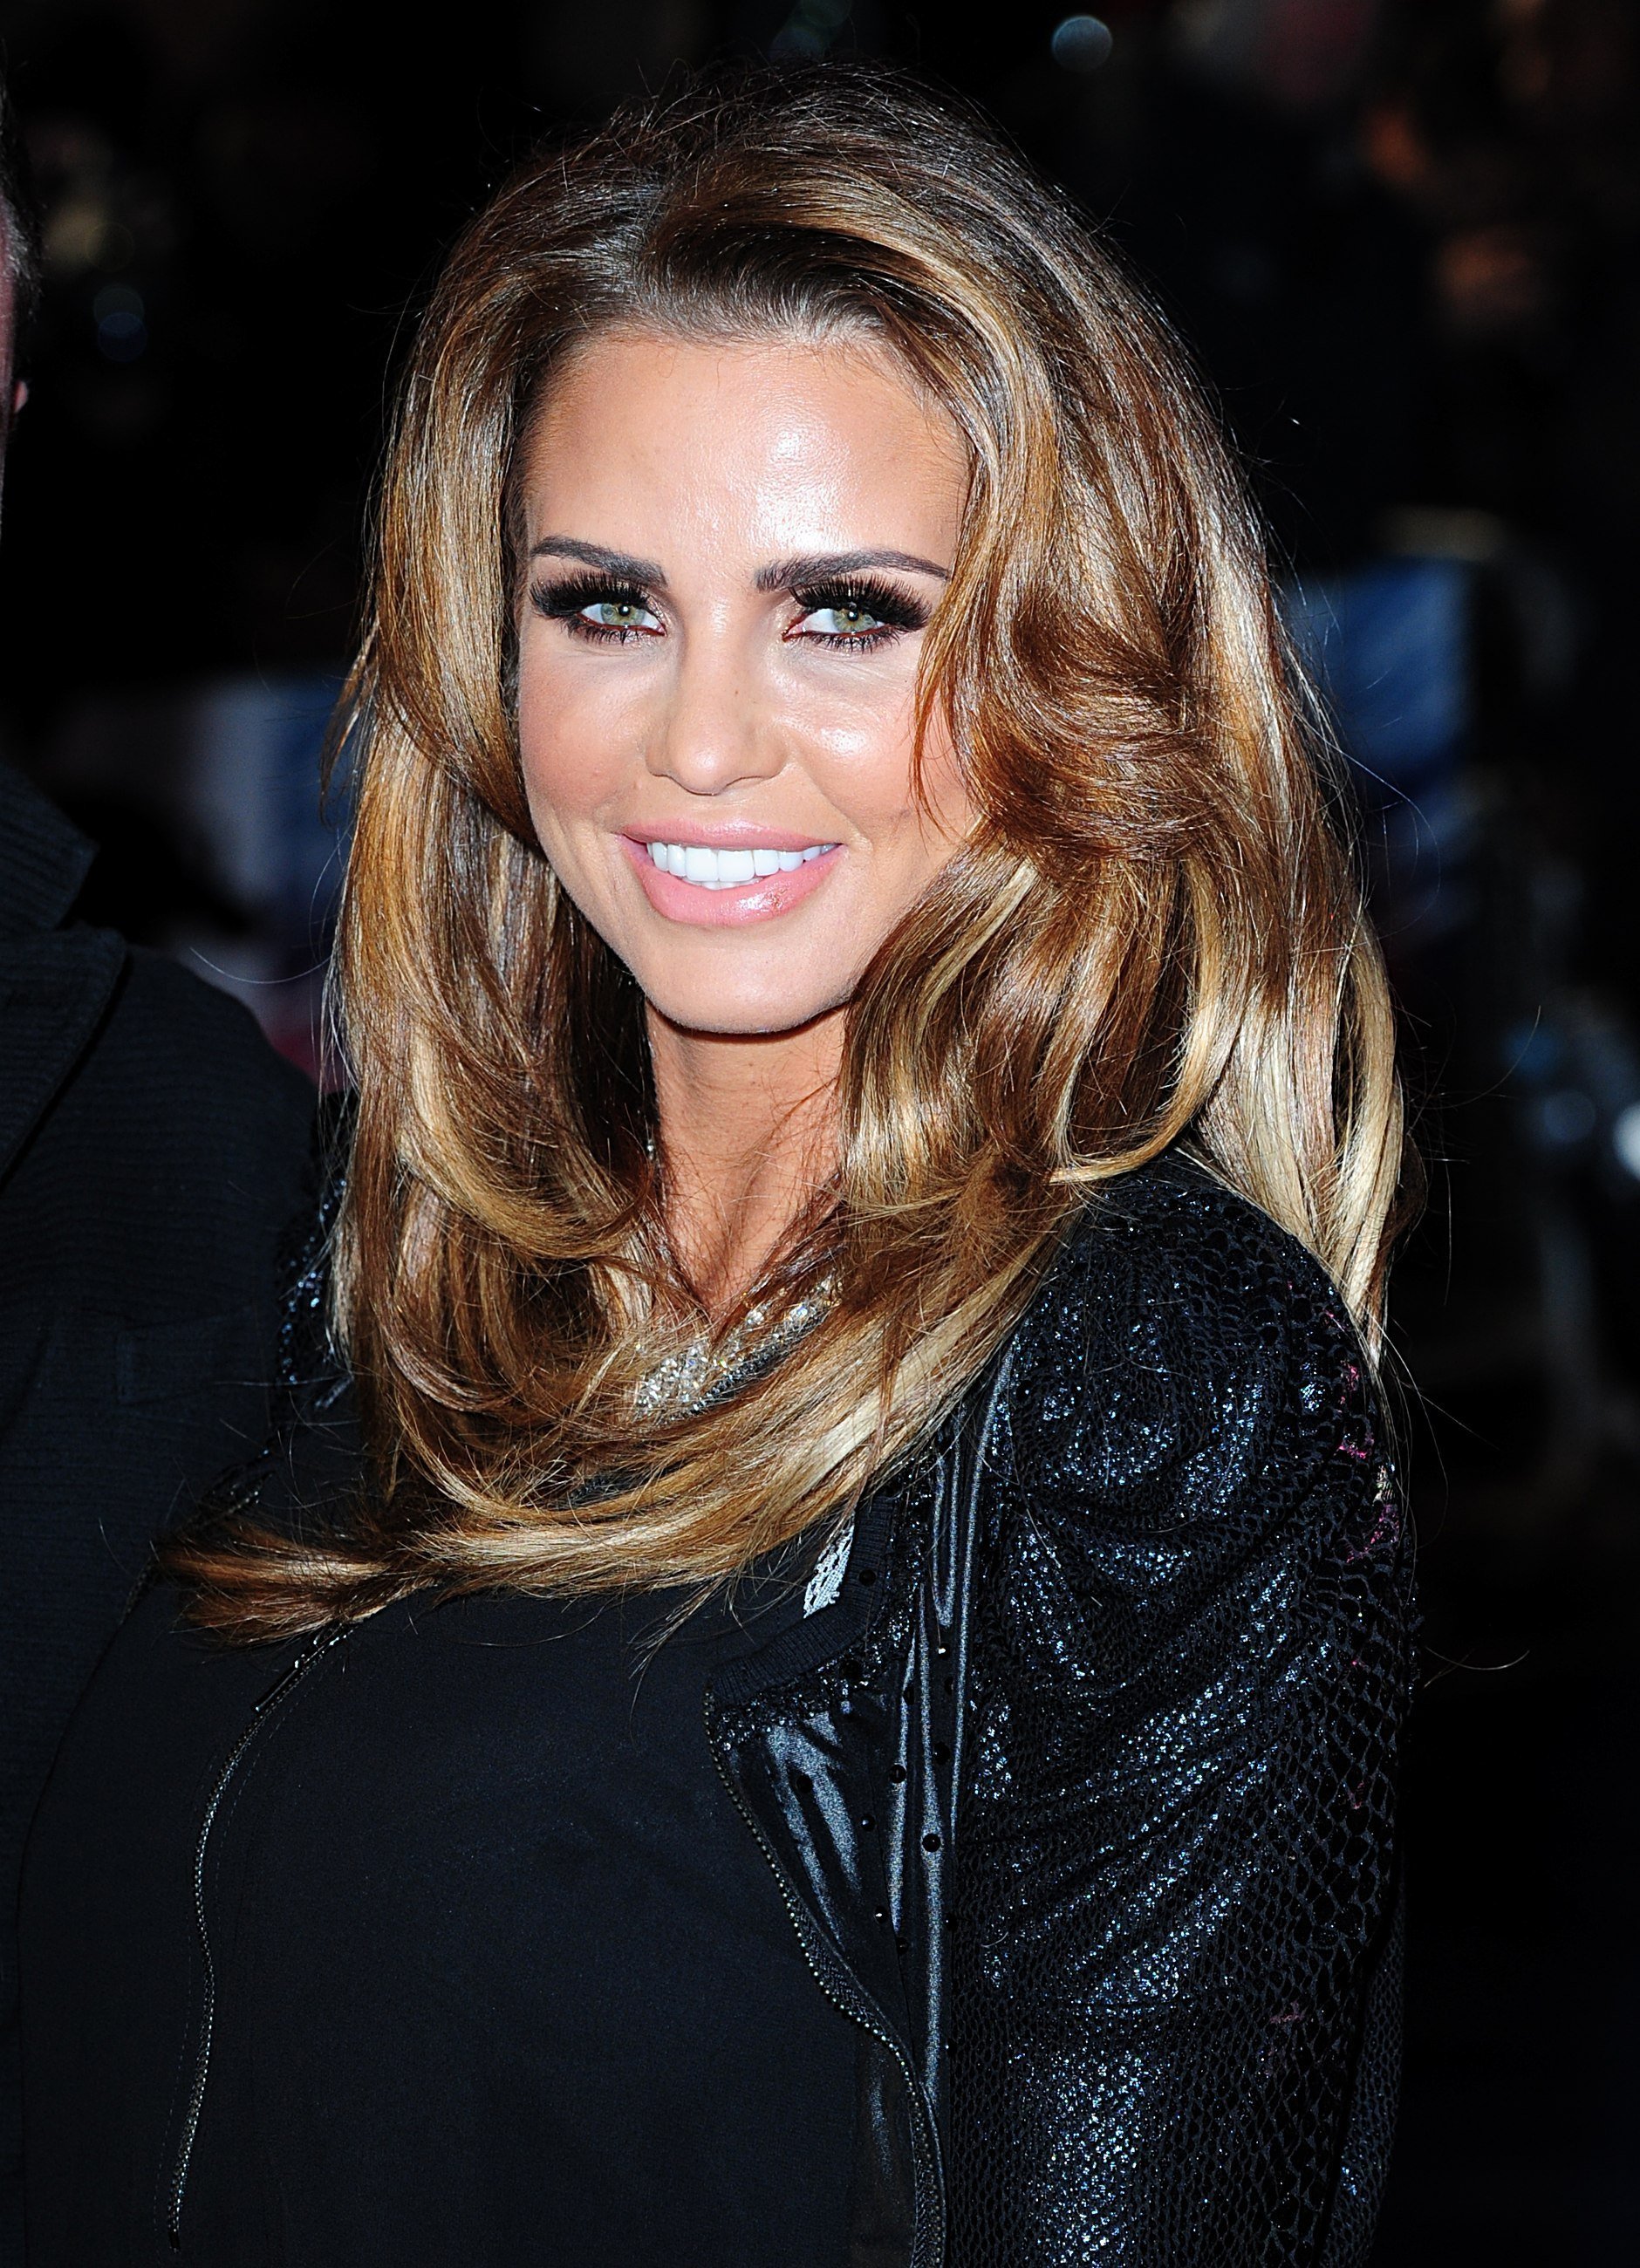 Katie Price arriving at the Premiere of Robocop at the BFI IMAX, South Bank, London. PRESS ASSOCIATION Photo. Picture date: Wednesday February 5, 2014. Photo credit should read: Ian West/PA Wire.